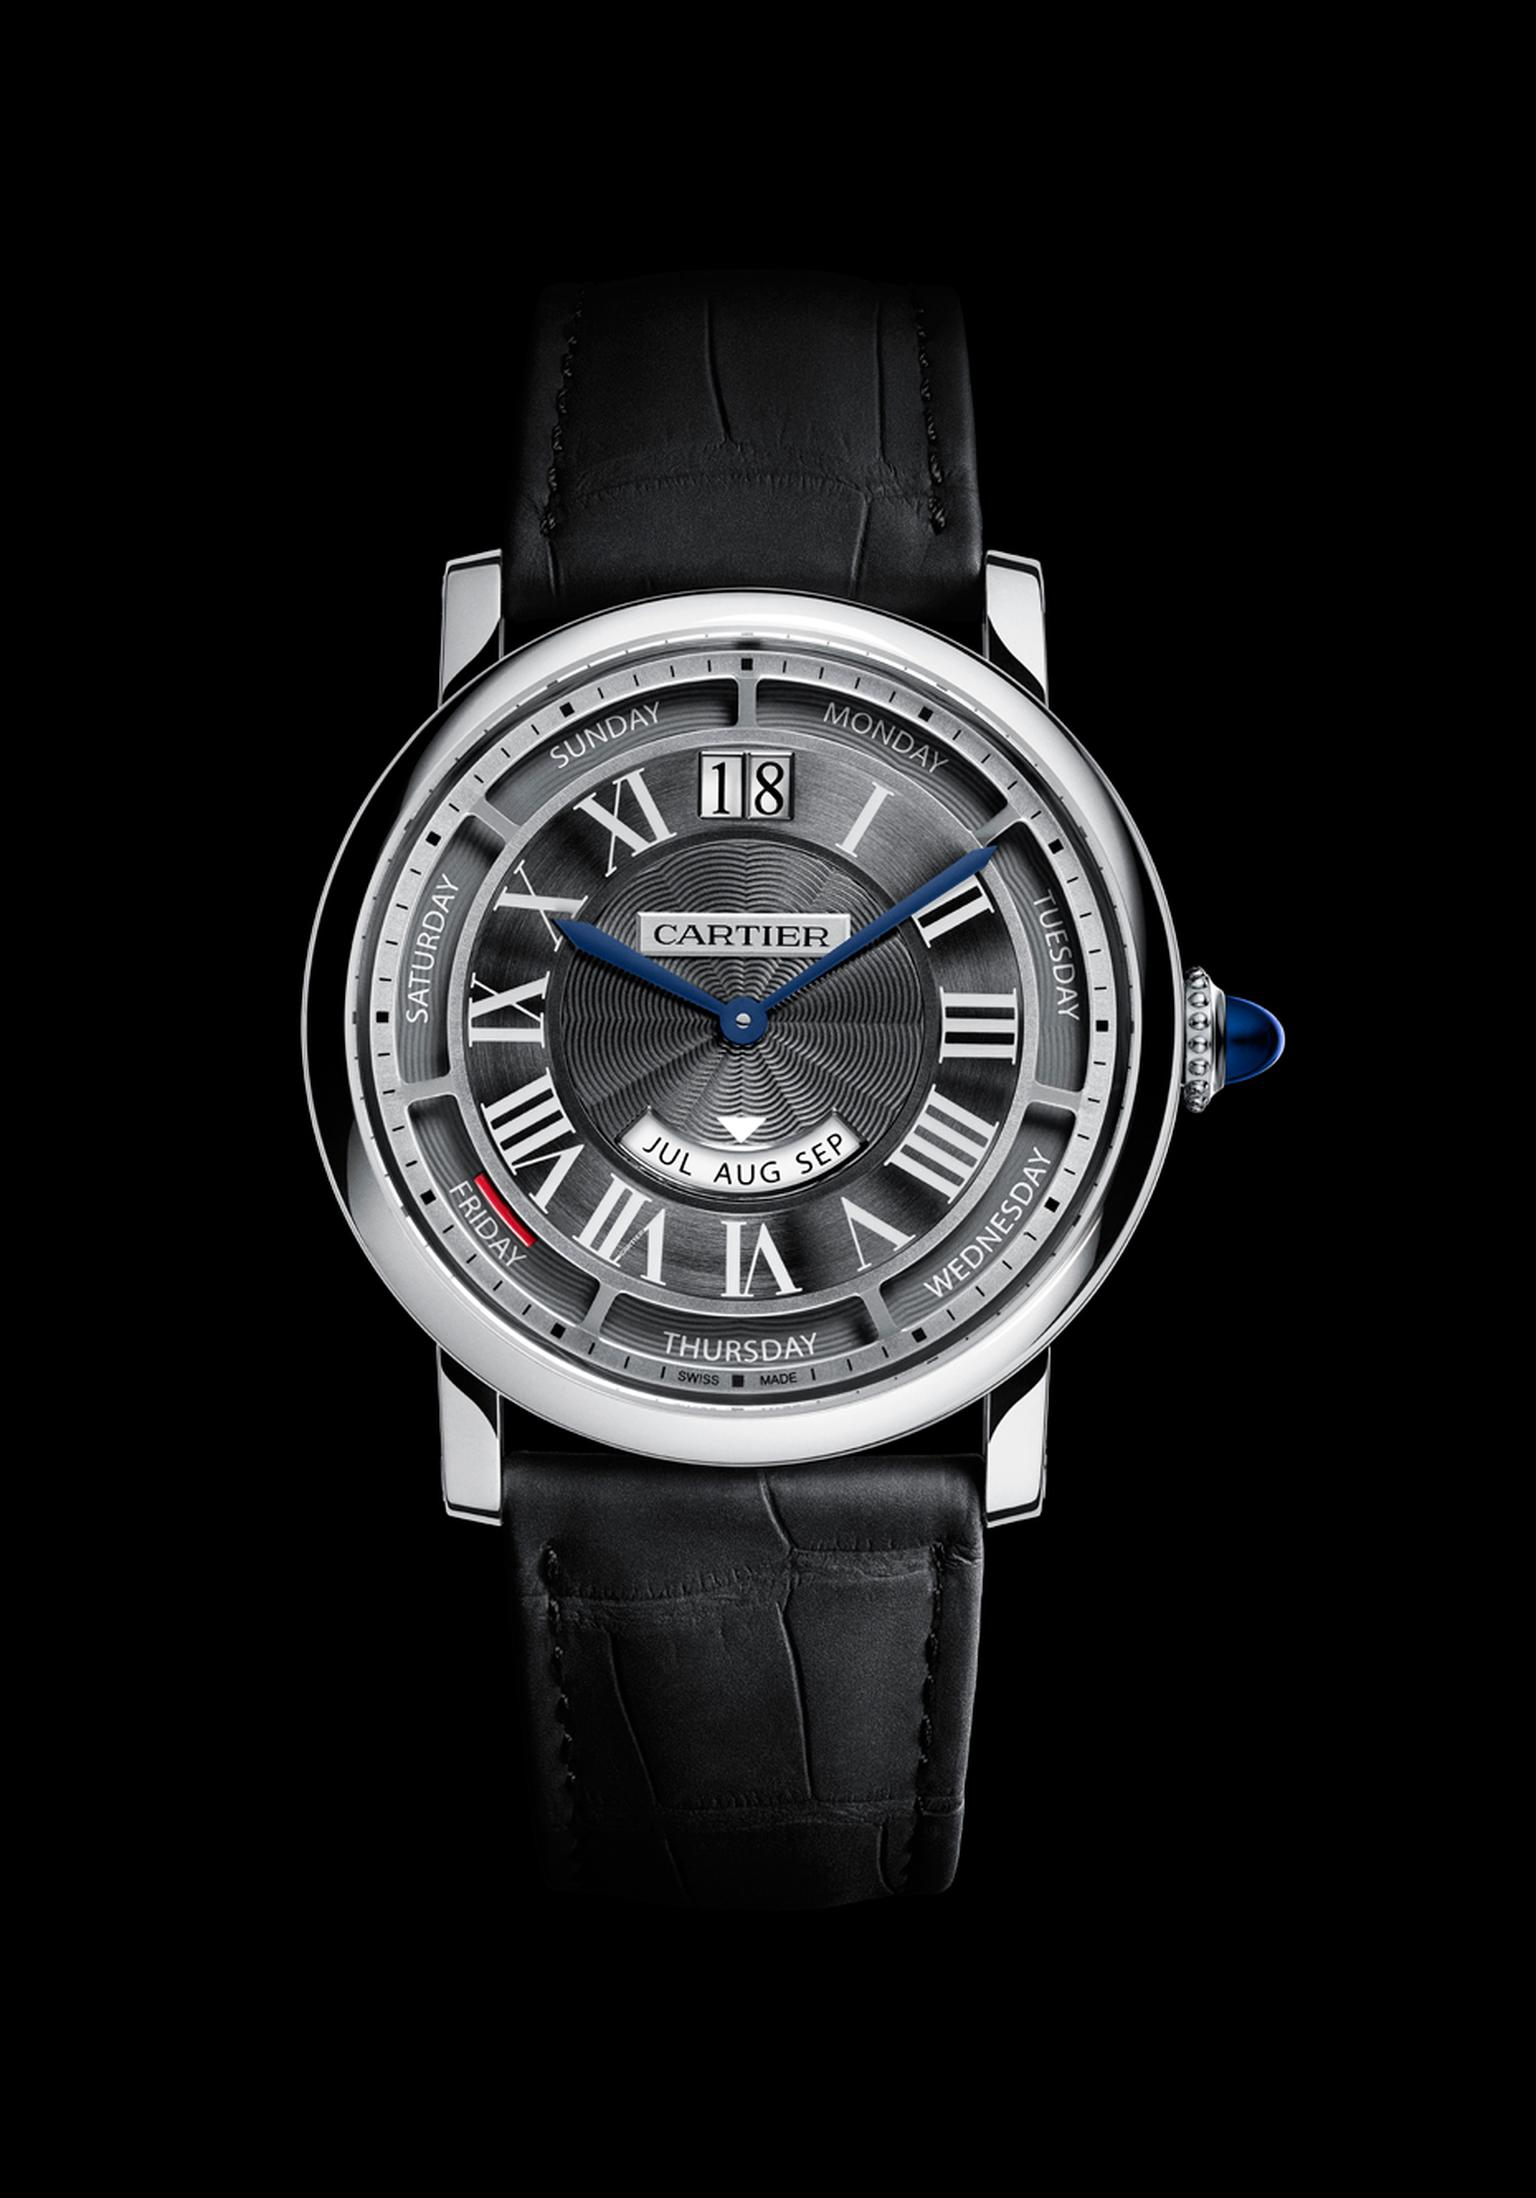 The Rotonde de Cartier Annual Calendar will be presented in a 40mm pink gold case with a white dial or in a white gold case with a more contemporary grey dial.